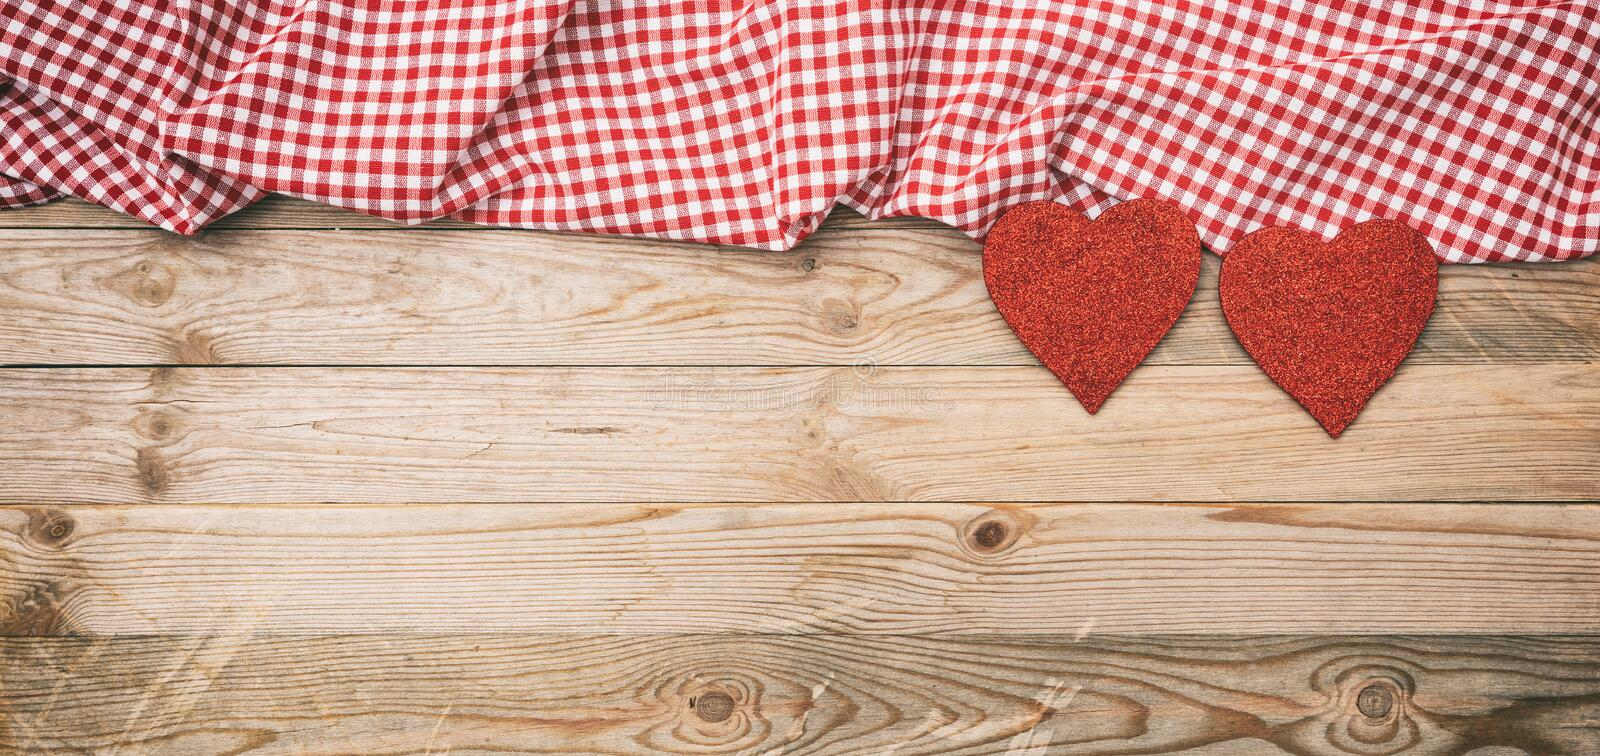 Valentines day. Top view of red fabric hearts, wooden background stock image